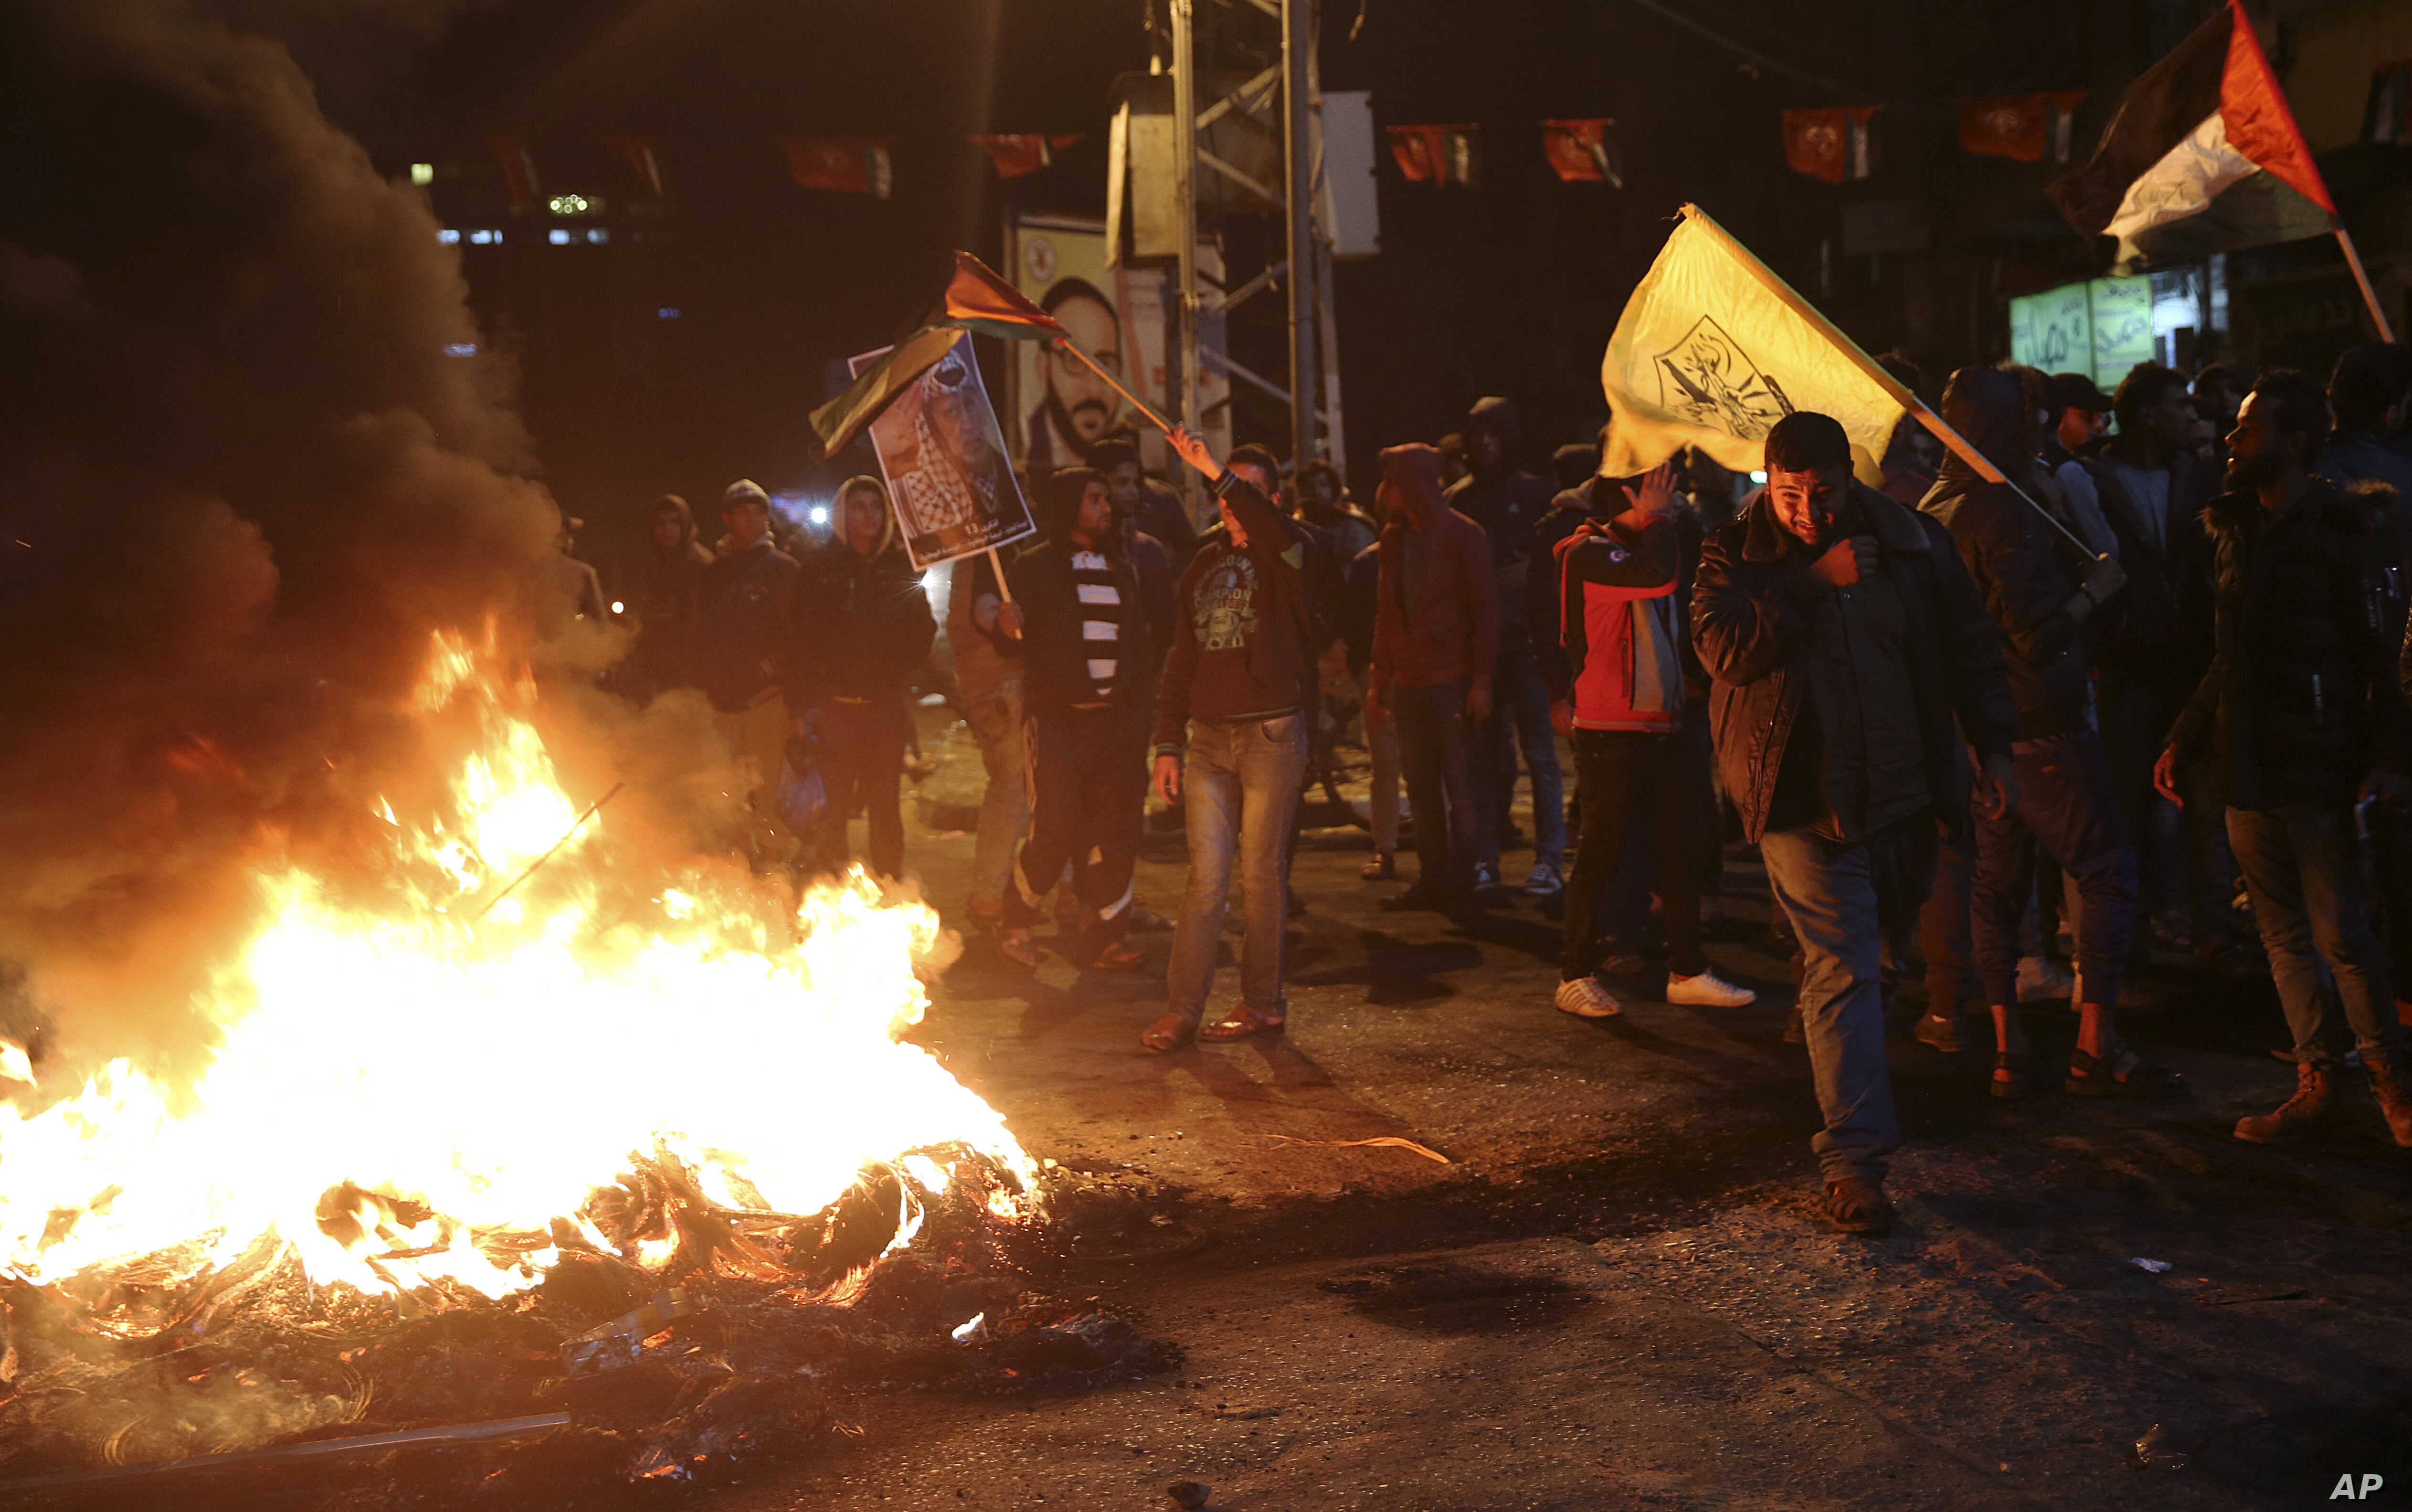 Palestinian protesters burn tires as they wave Palestinian flags and pictures of late Palestinian president Yasser Arafat during a protest in Gaza City, Dec. 6, 2017. Defying worldwide warnings, U.S. President Donald Trump on Wednesday broke with dec...